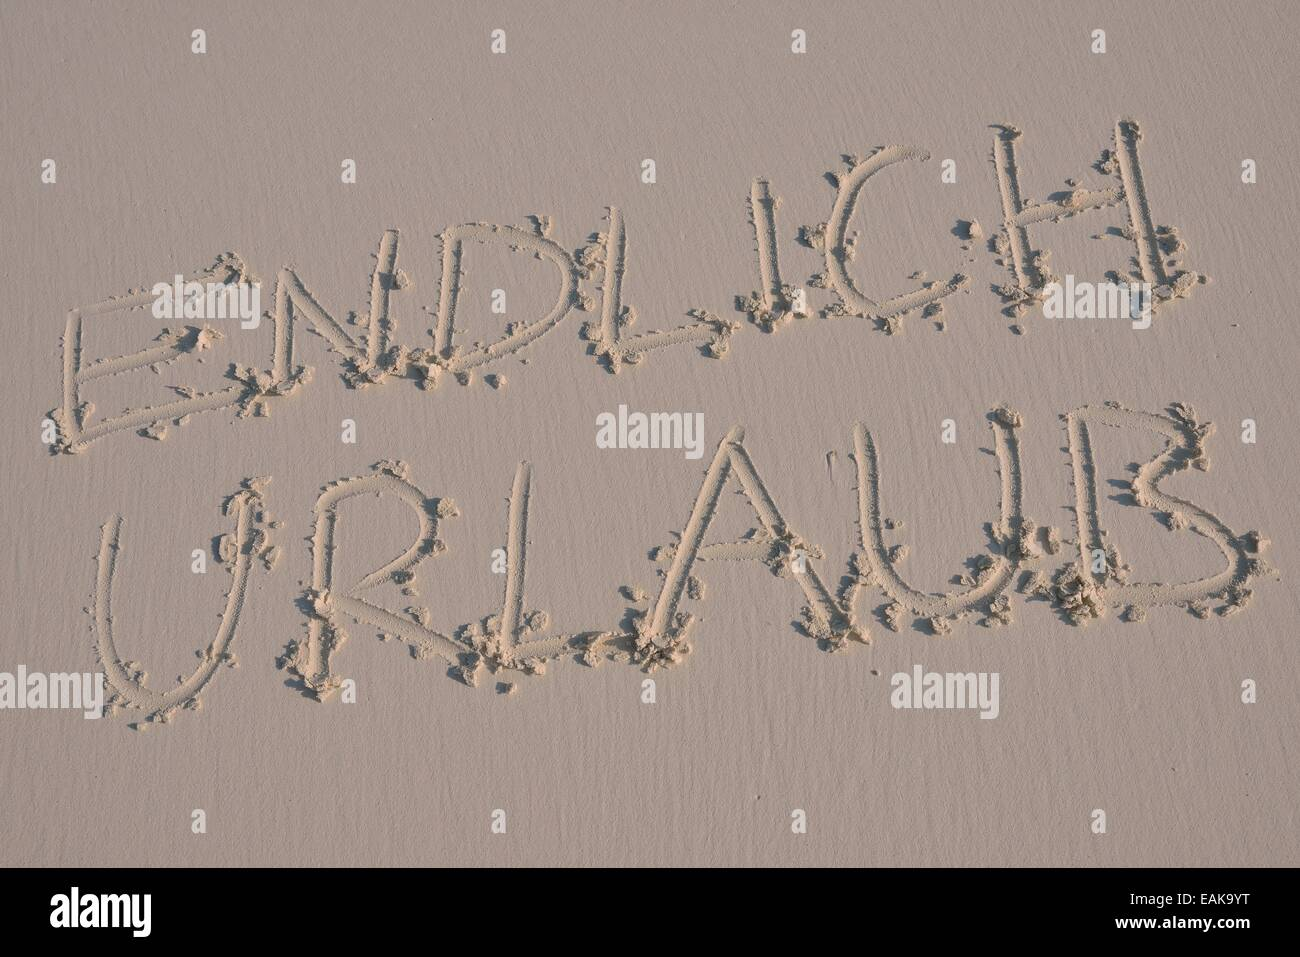 Writing in the sand 'endlich Urlaub', German for 'finally holidays' - Stock Image